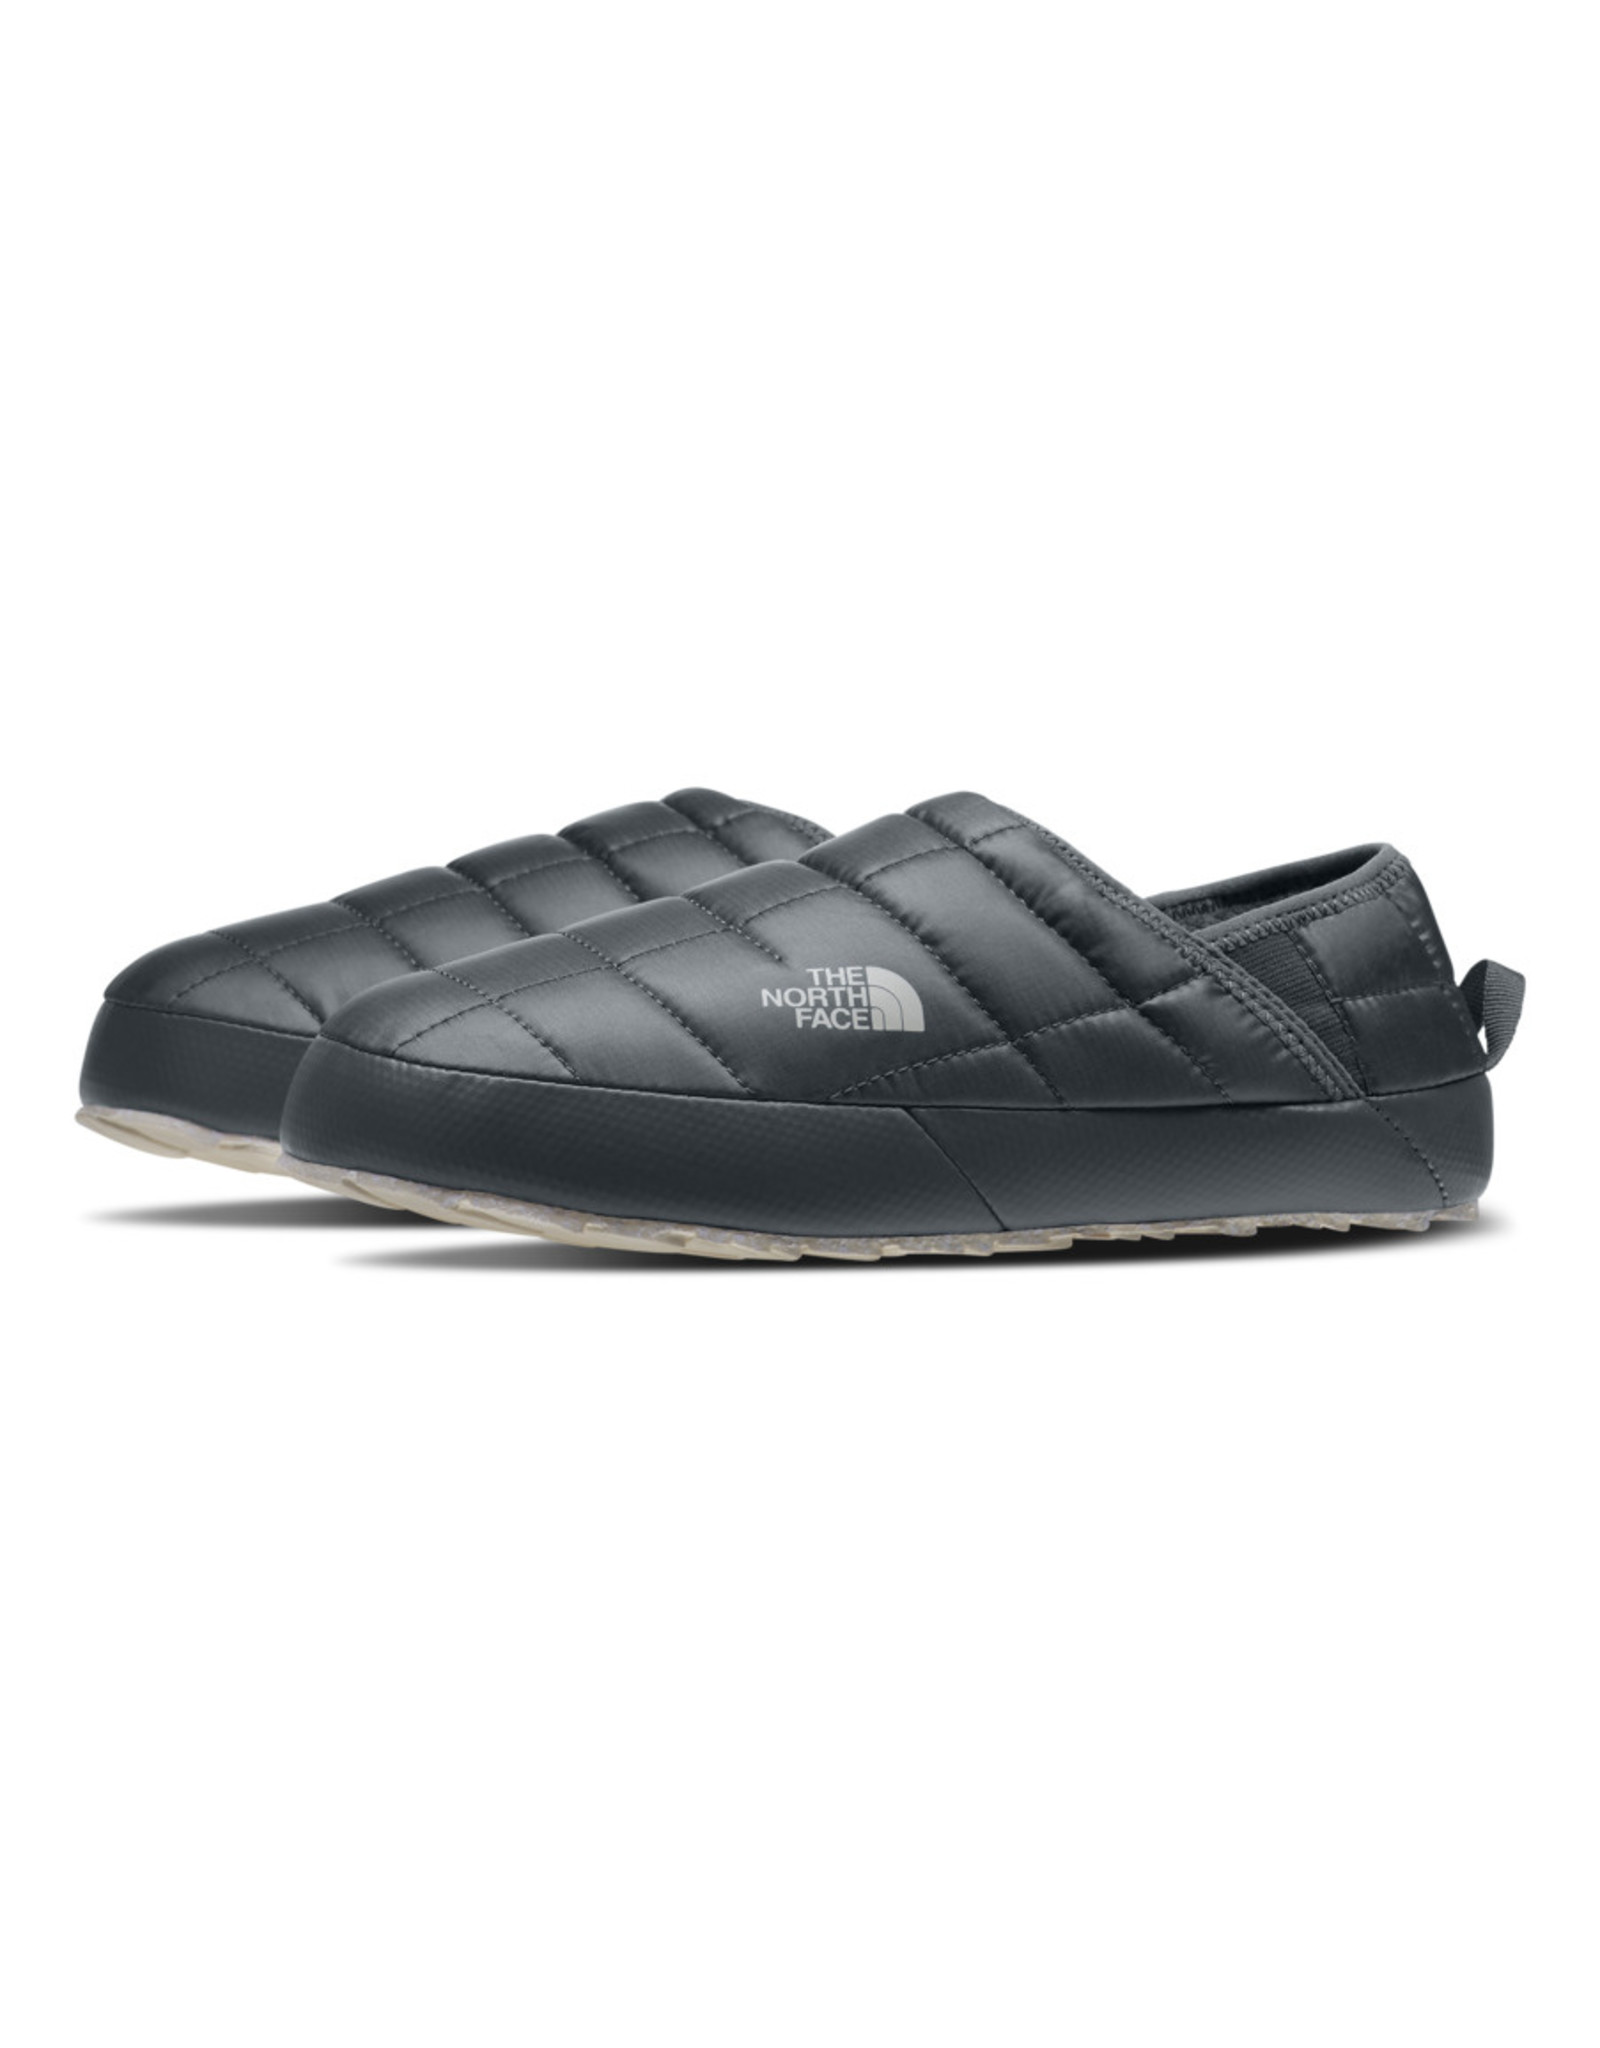 The North Face The North Face Women's Thermoball Traction Mule V